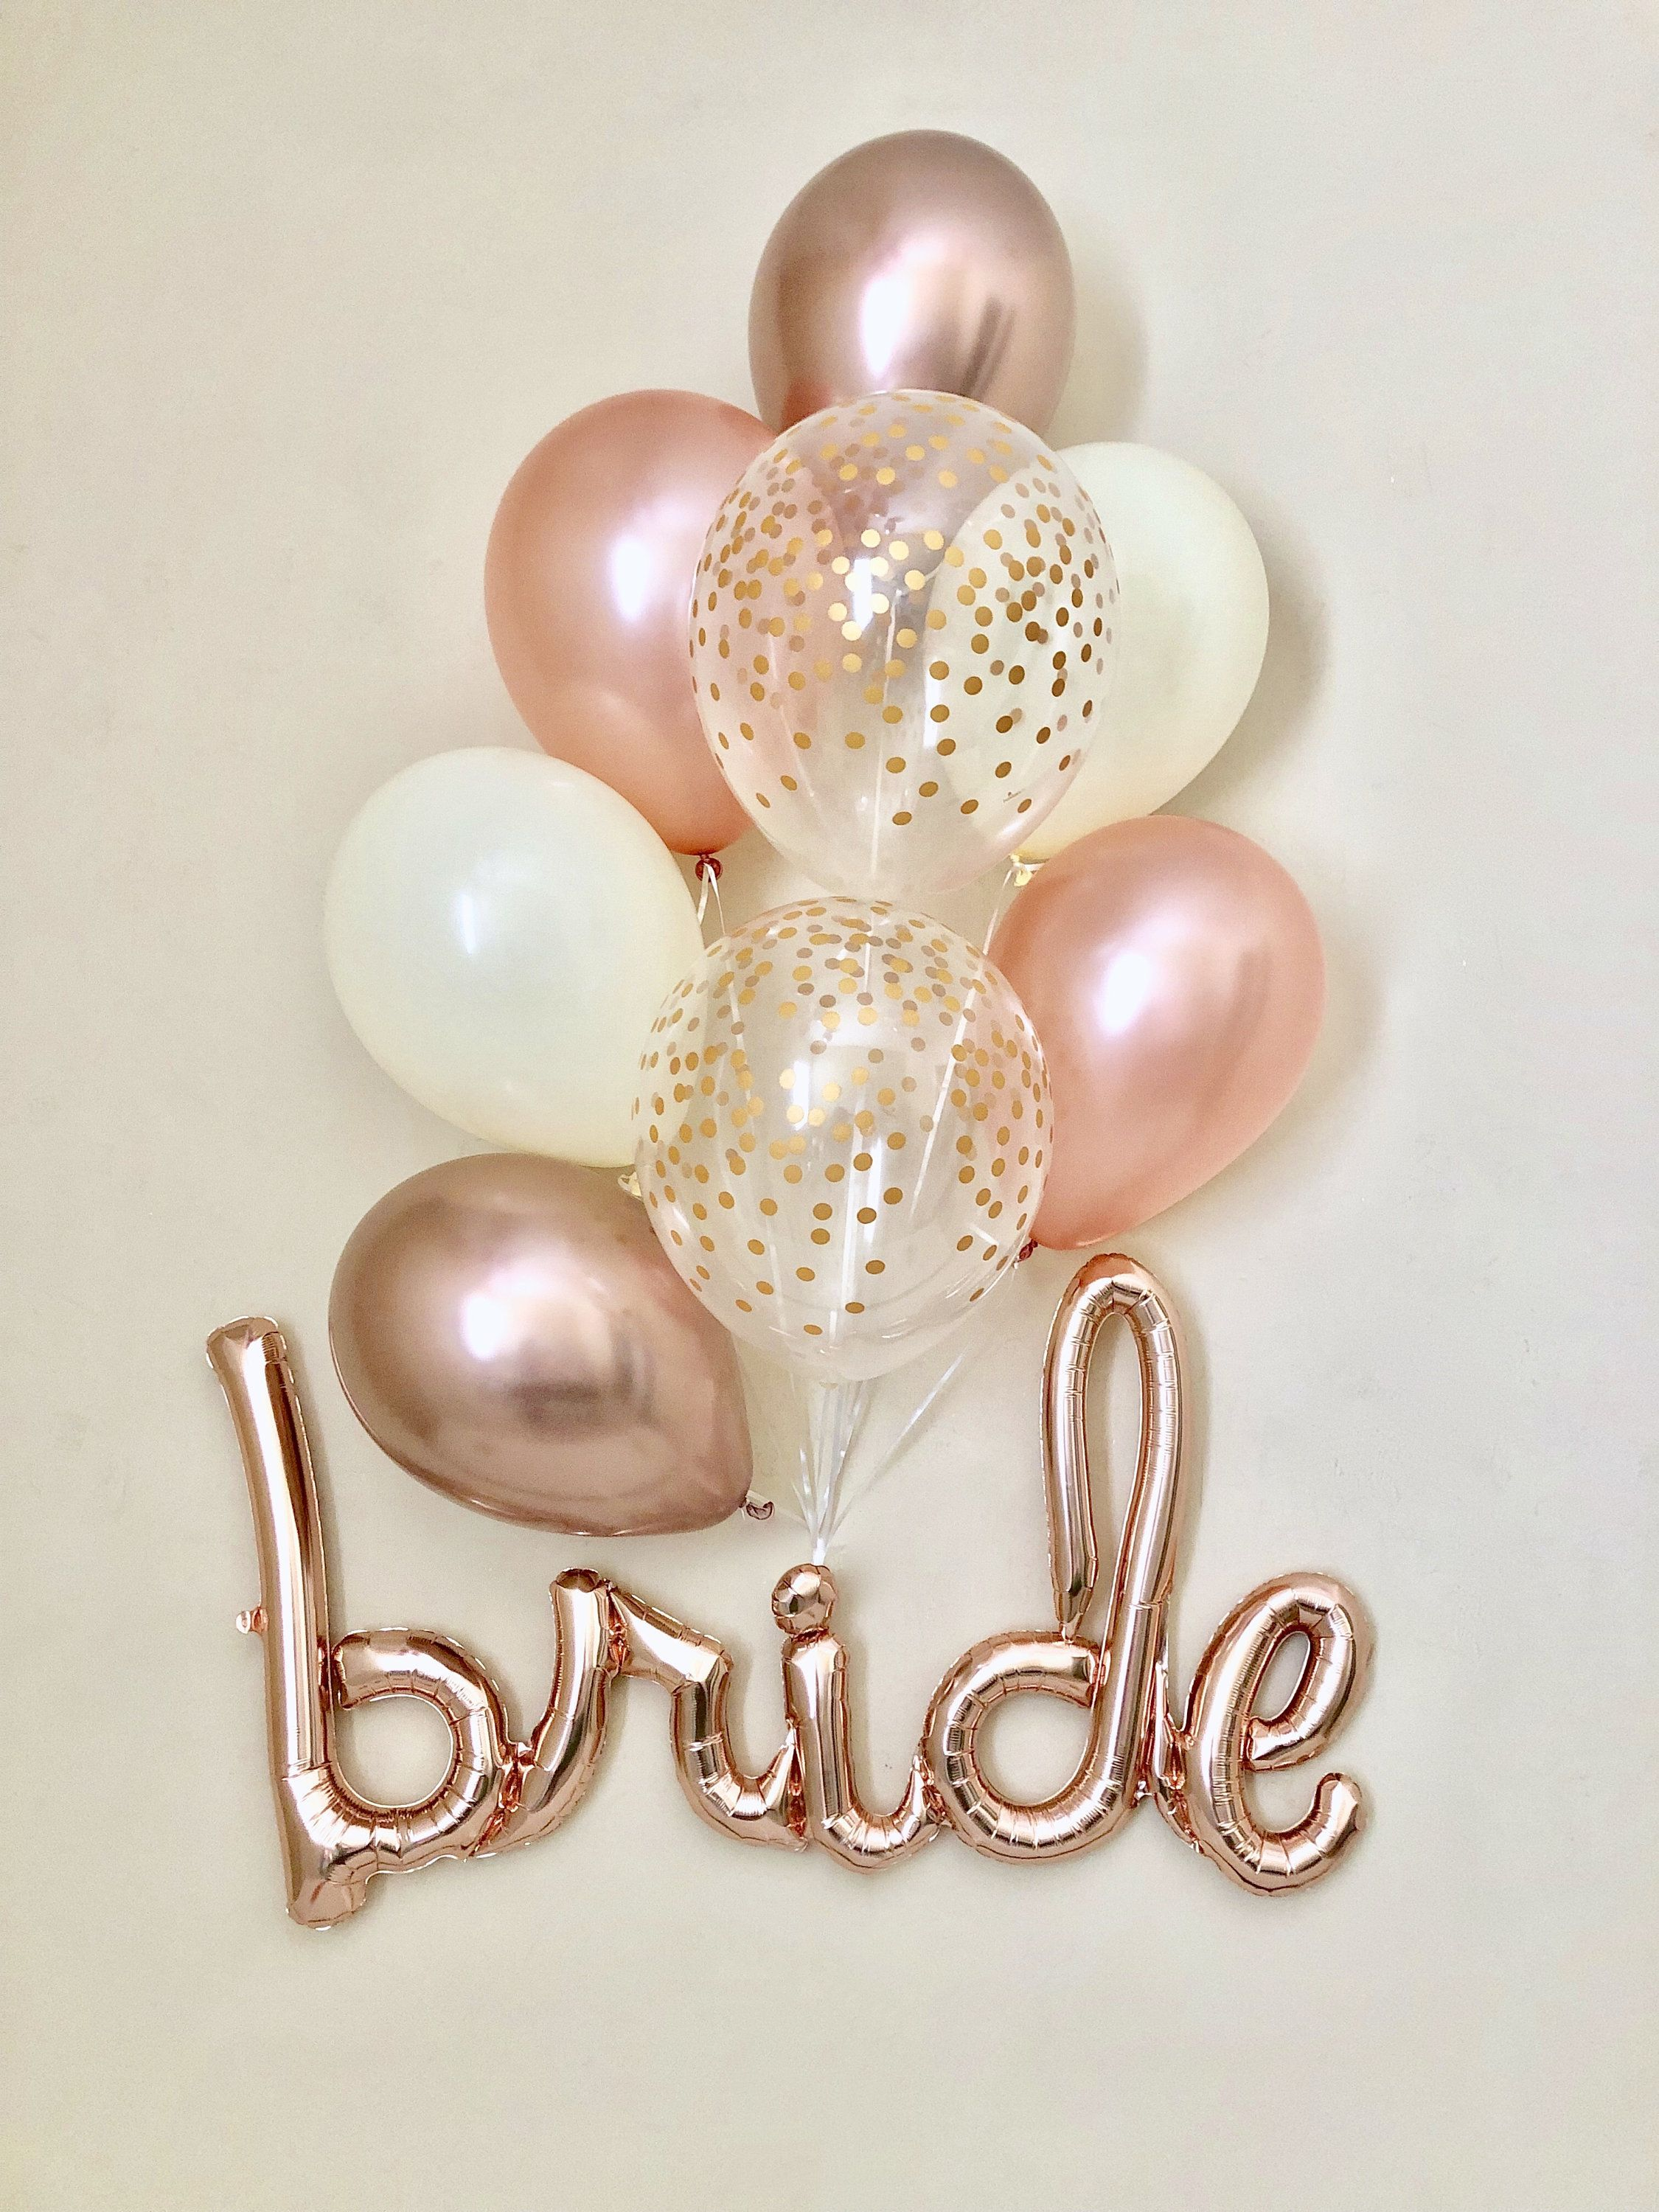 Bride Rose Gold Script Balloon~Chrome Rose Gold Balloons~Wedding Shower Decor~Gold Confetti Balloon~Bridal Shower~Engagement Party~Rose Gold